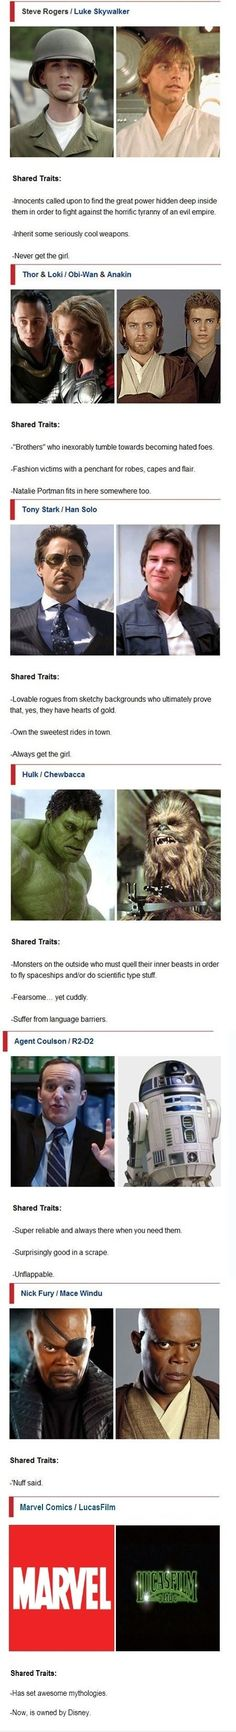 Star Wars VS. Avengers - funny pictures / funny pics / lol /  #humor #funny #funnypictures #funnypics